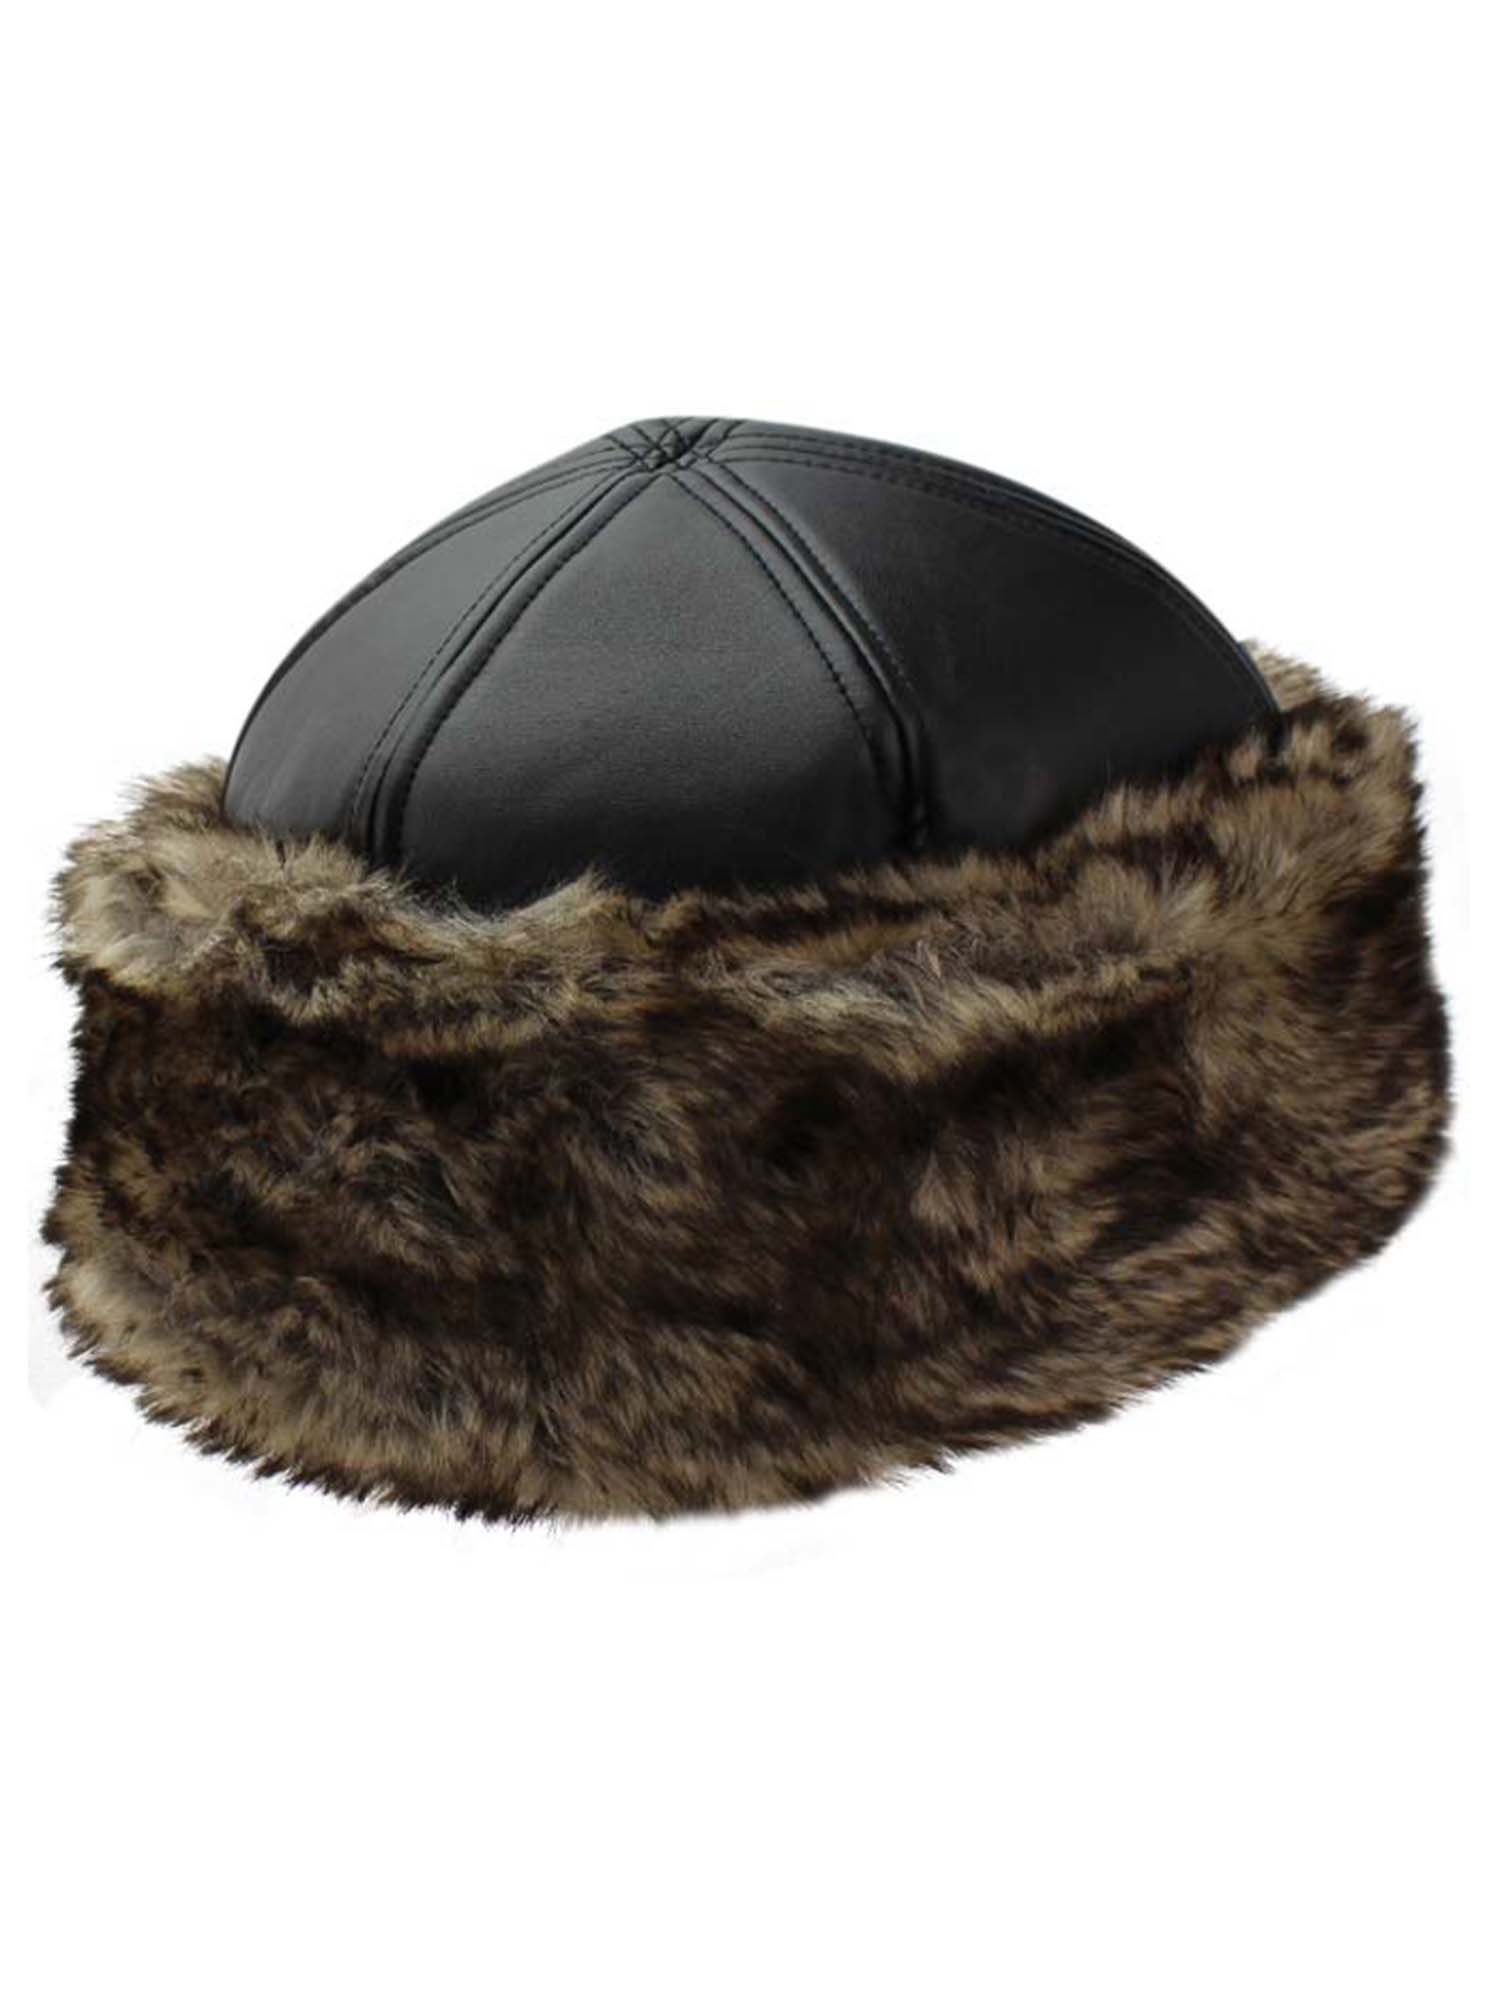 Luxury Divas Black Faux Leather & Fur Trim Russian Hat with Quilted Lining